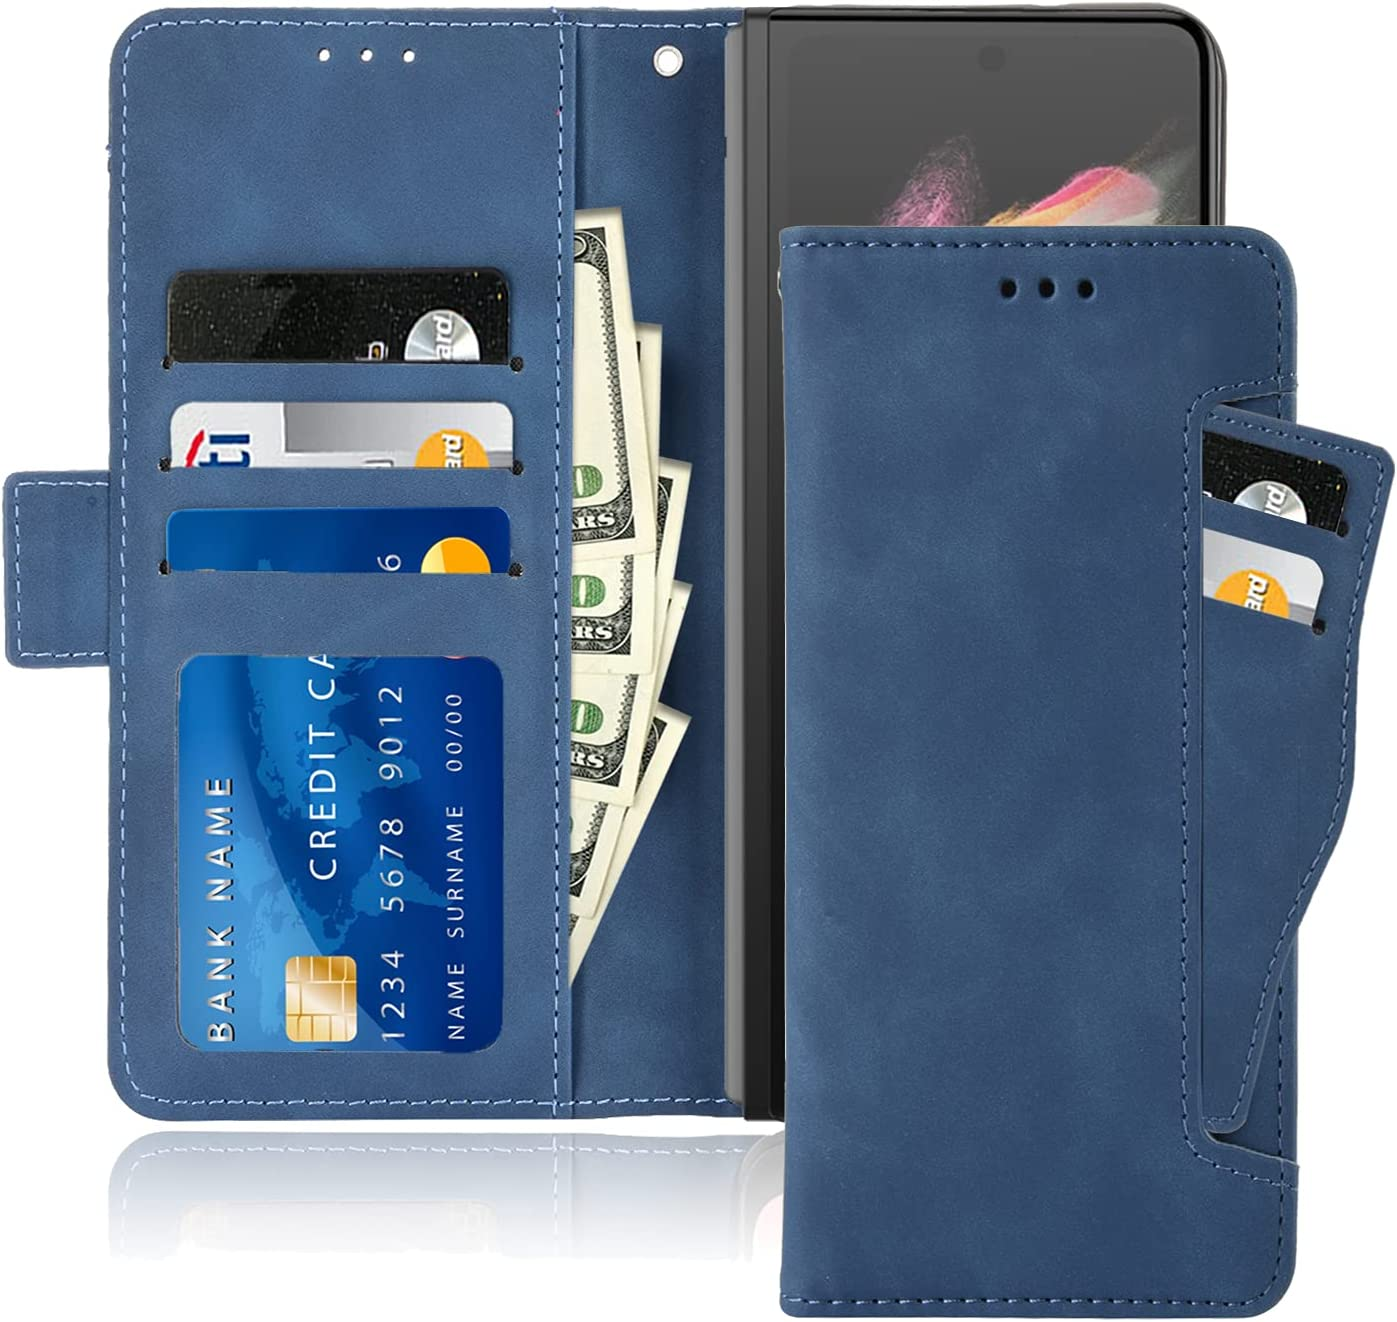 10 Cent Galaxy Z Fold 3 5G Case, Galaxy Z Fold 3 Wallet case, Classic Leather Wallet Foldable Case with Credit Card Holder Slots Flip Wallet Case for Samsung Galaxy ZFold3 5G(Blue)